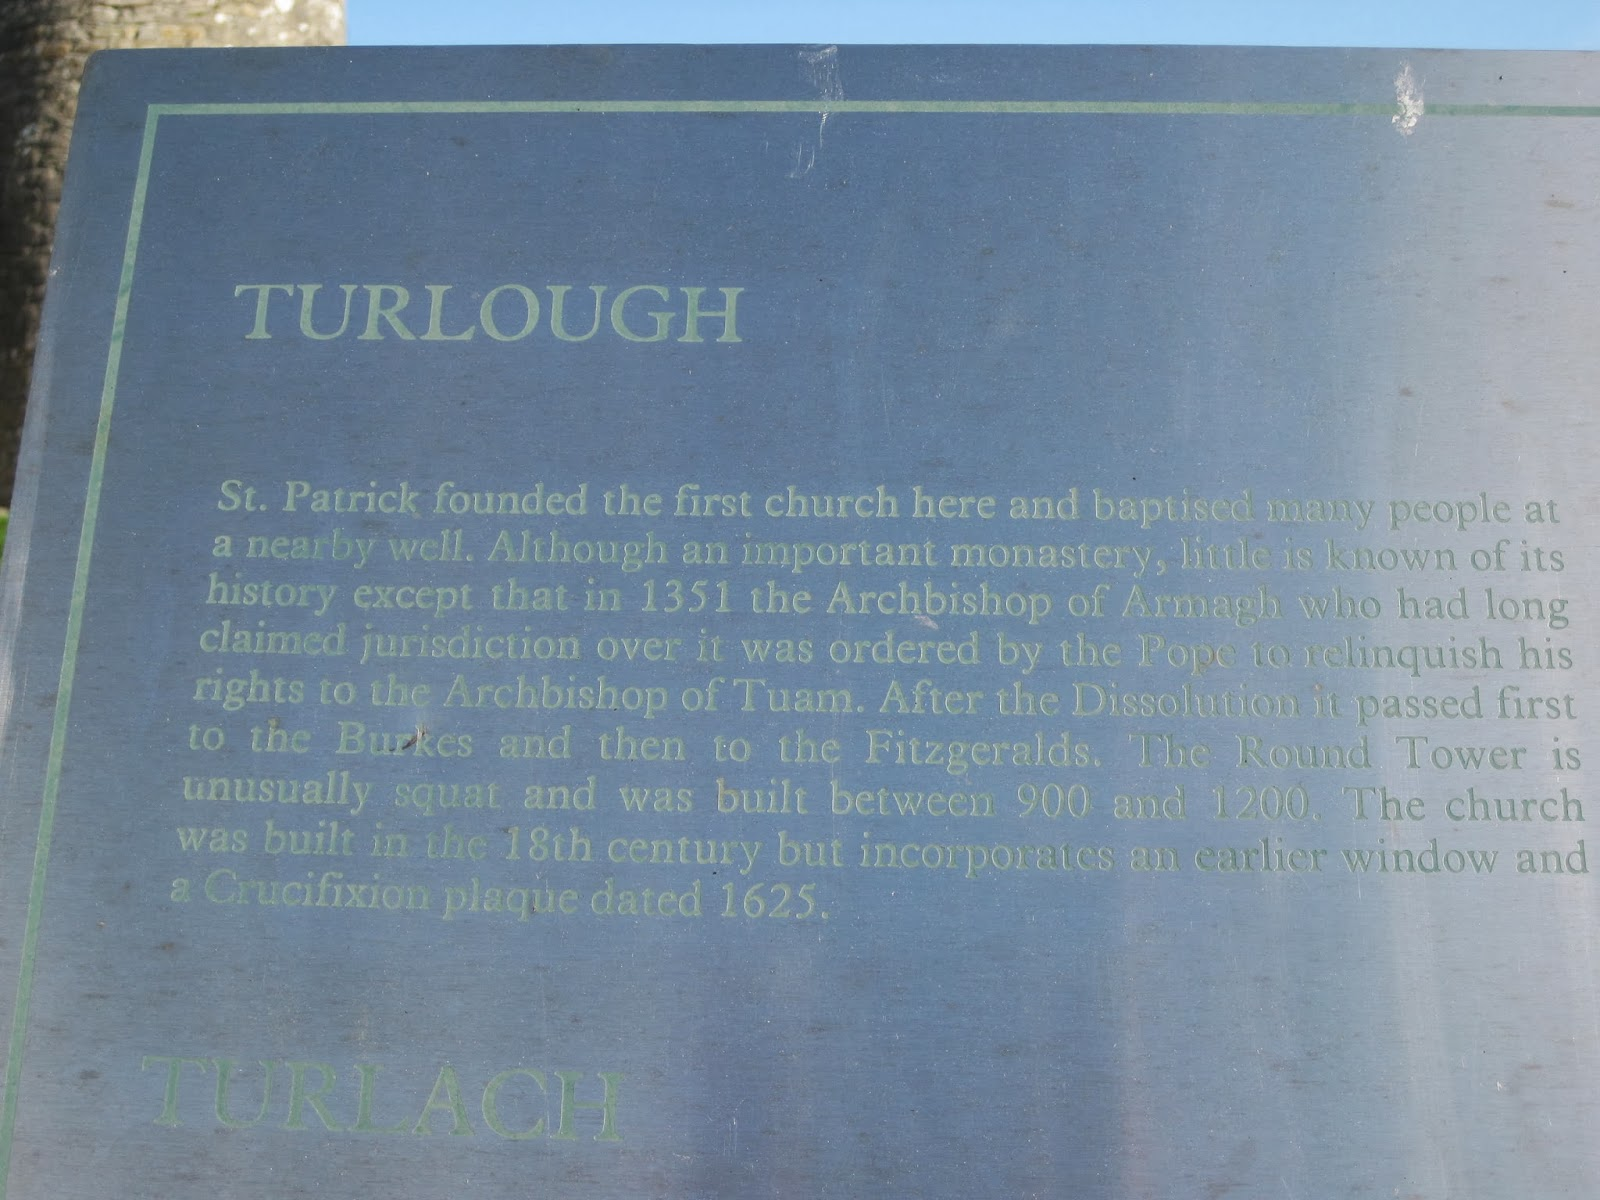 Turlough burial ground, Turlough cemetery